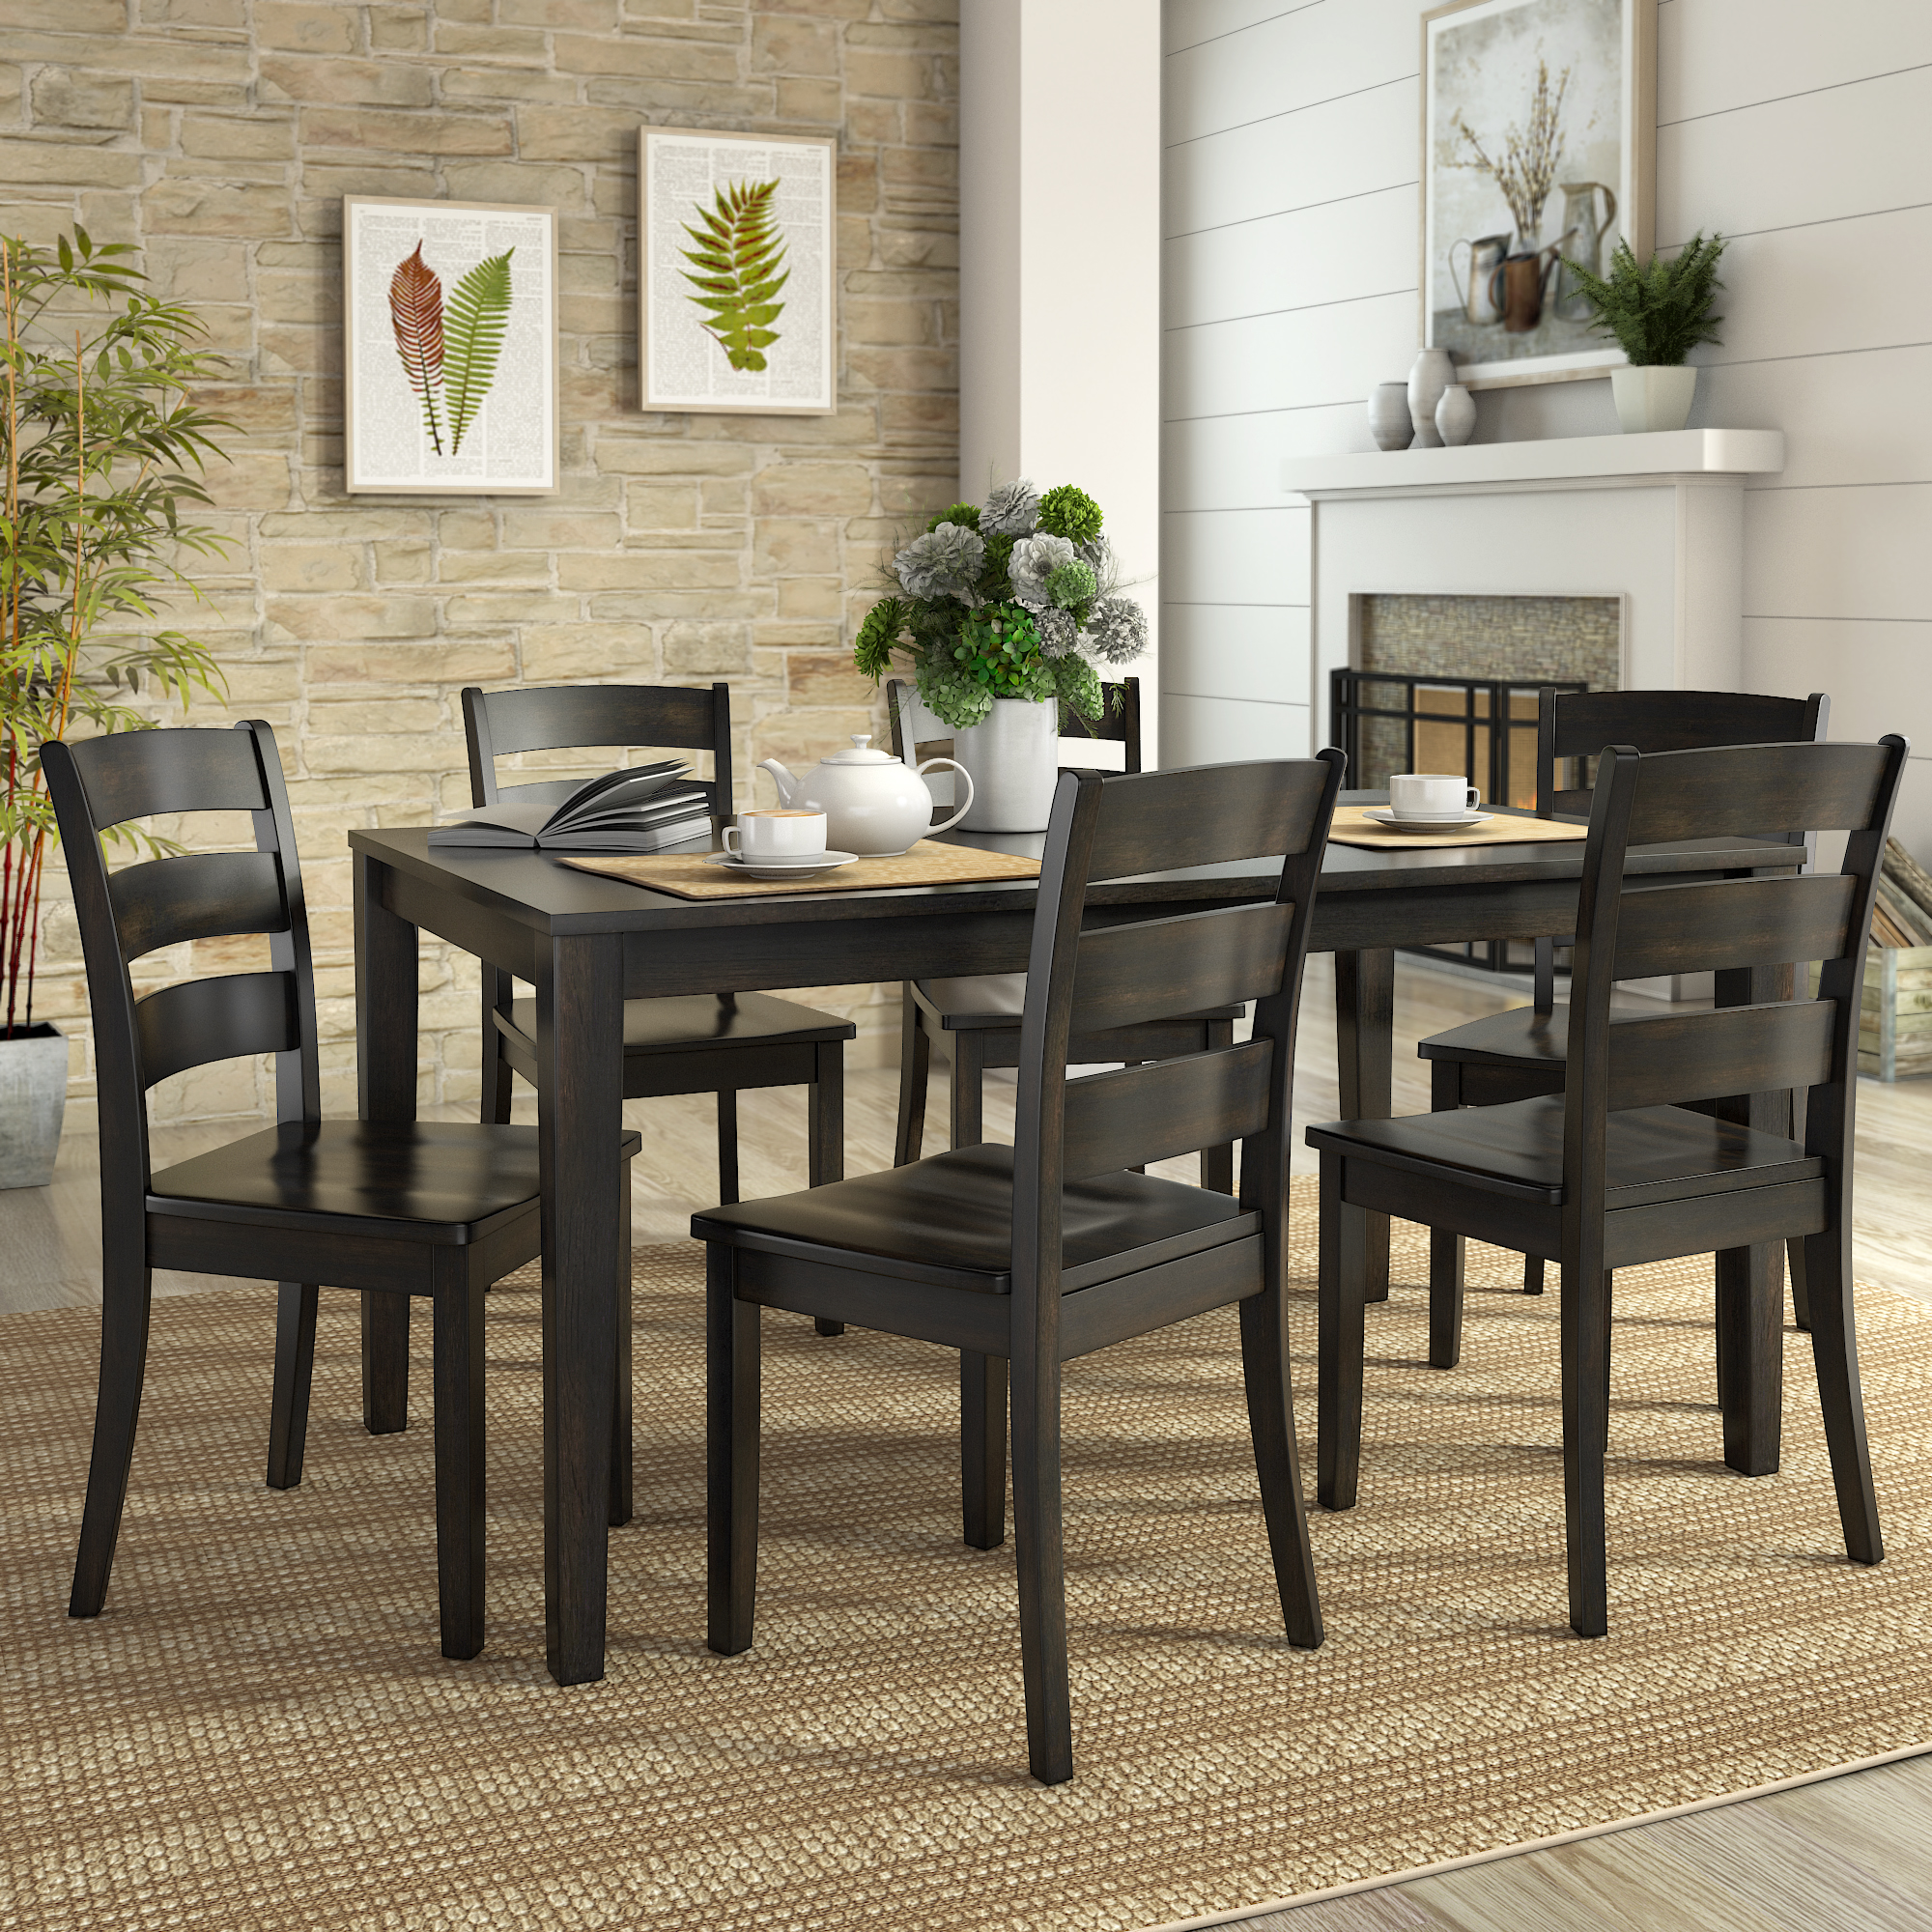 Lexington Large Dining Set with 6 Ladder Back Chairs